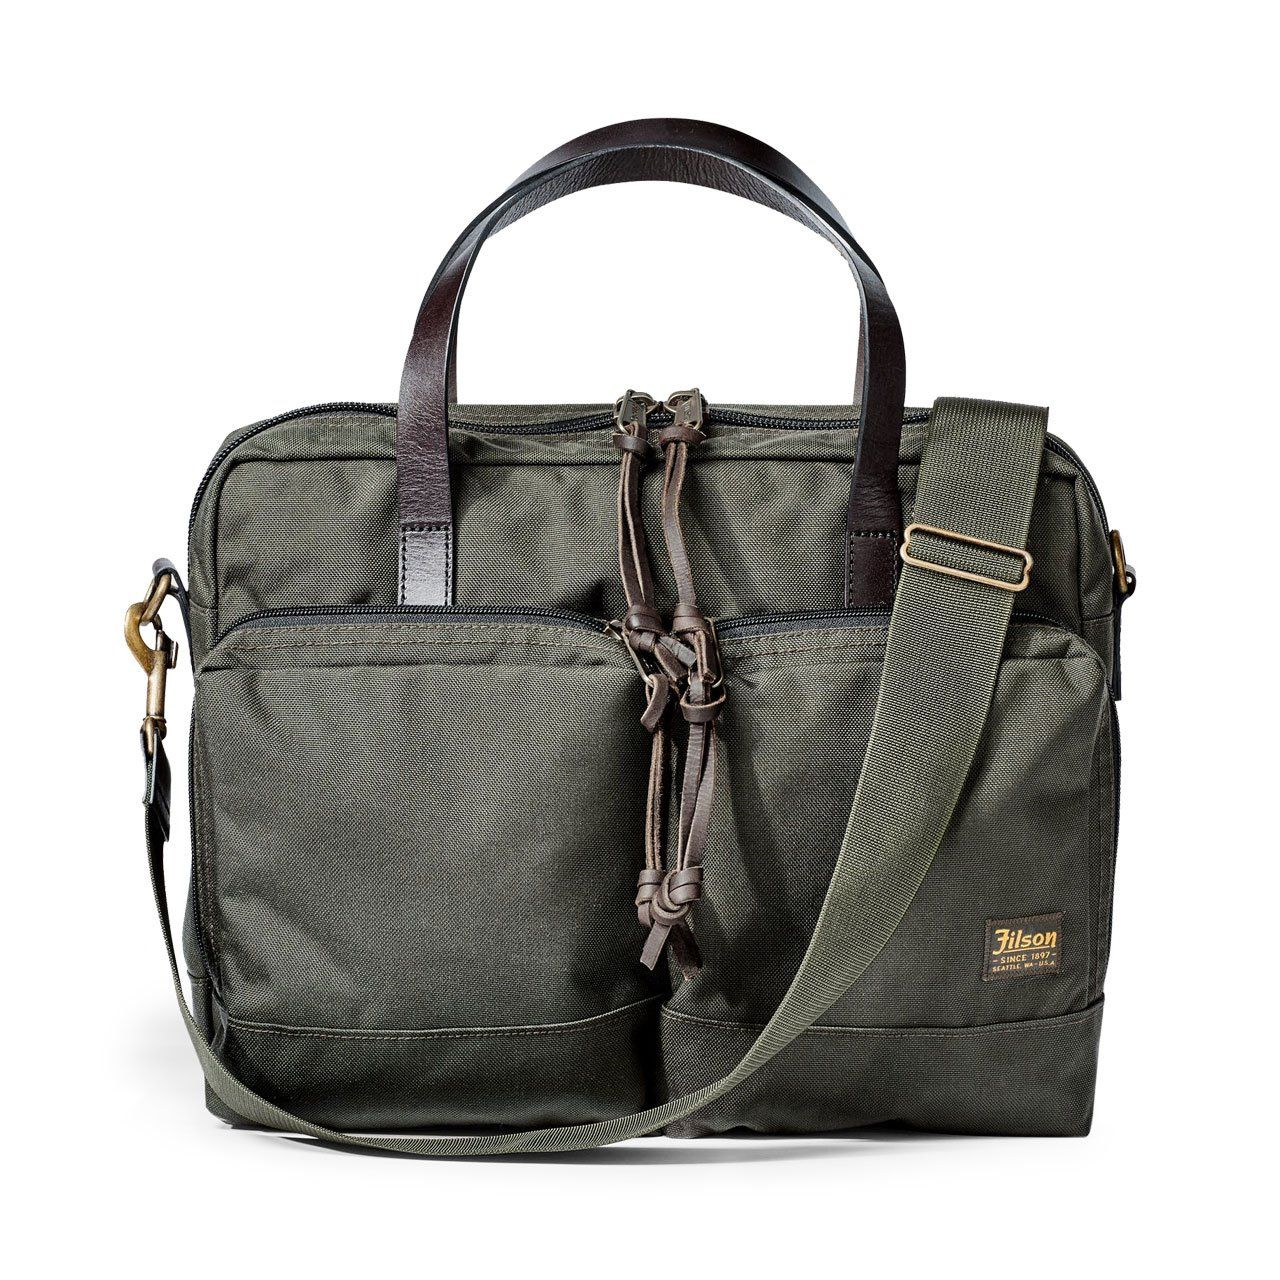 Filson's lightest briefcase, the Dryden is made of abrasion-resistant 1000D Cordura nylon. This makes it incredibly tough and ready to stand up to daily wear...